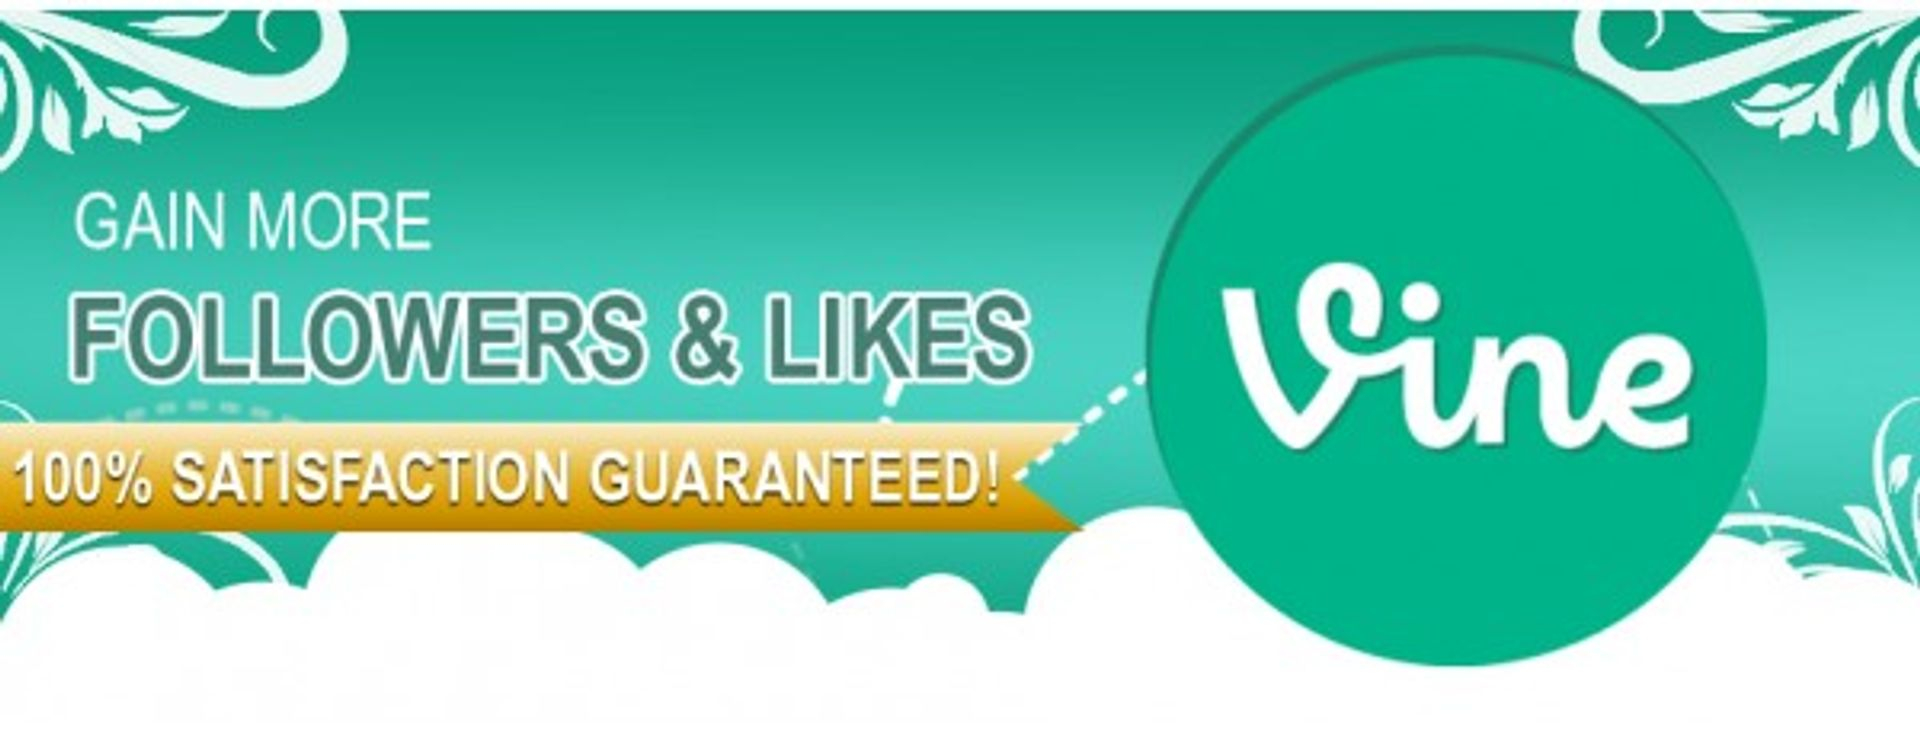 Gain Thousands of Vine Followers!